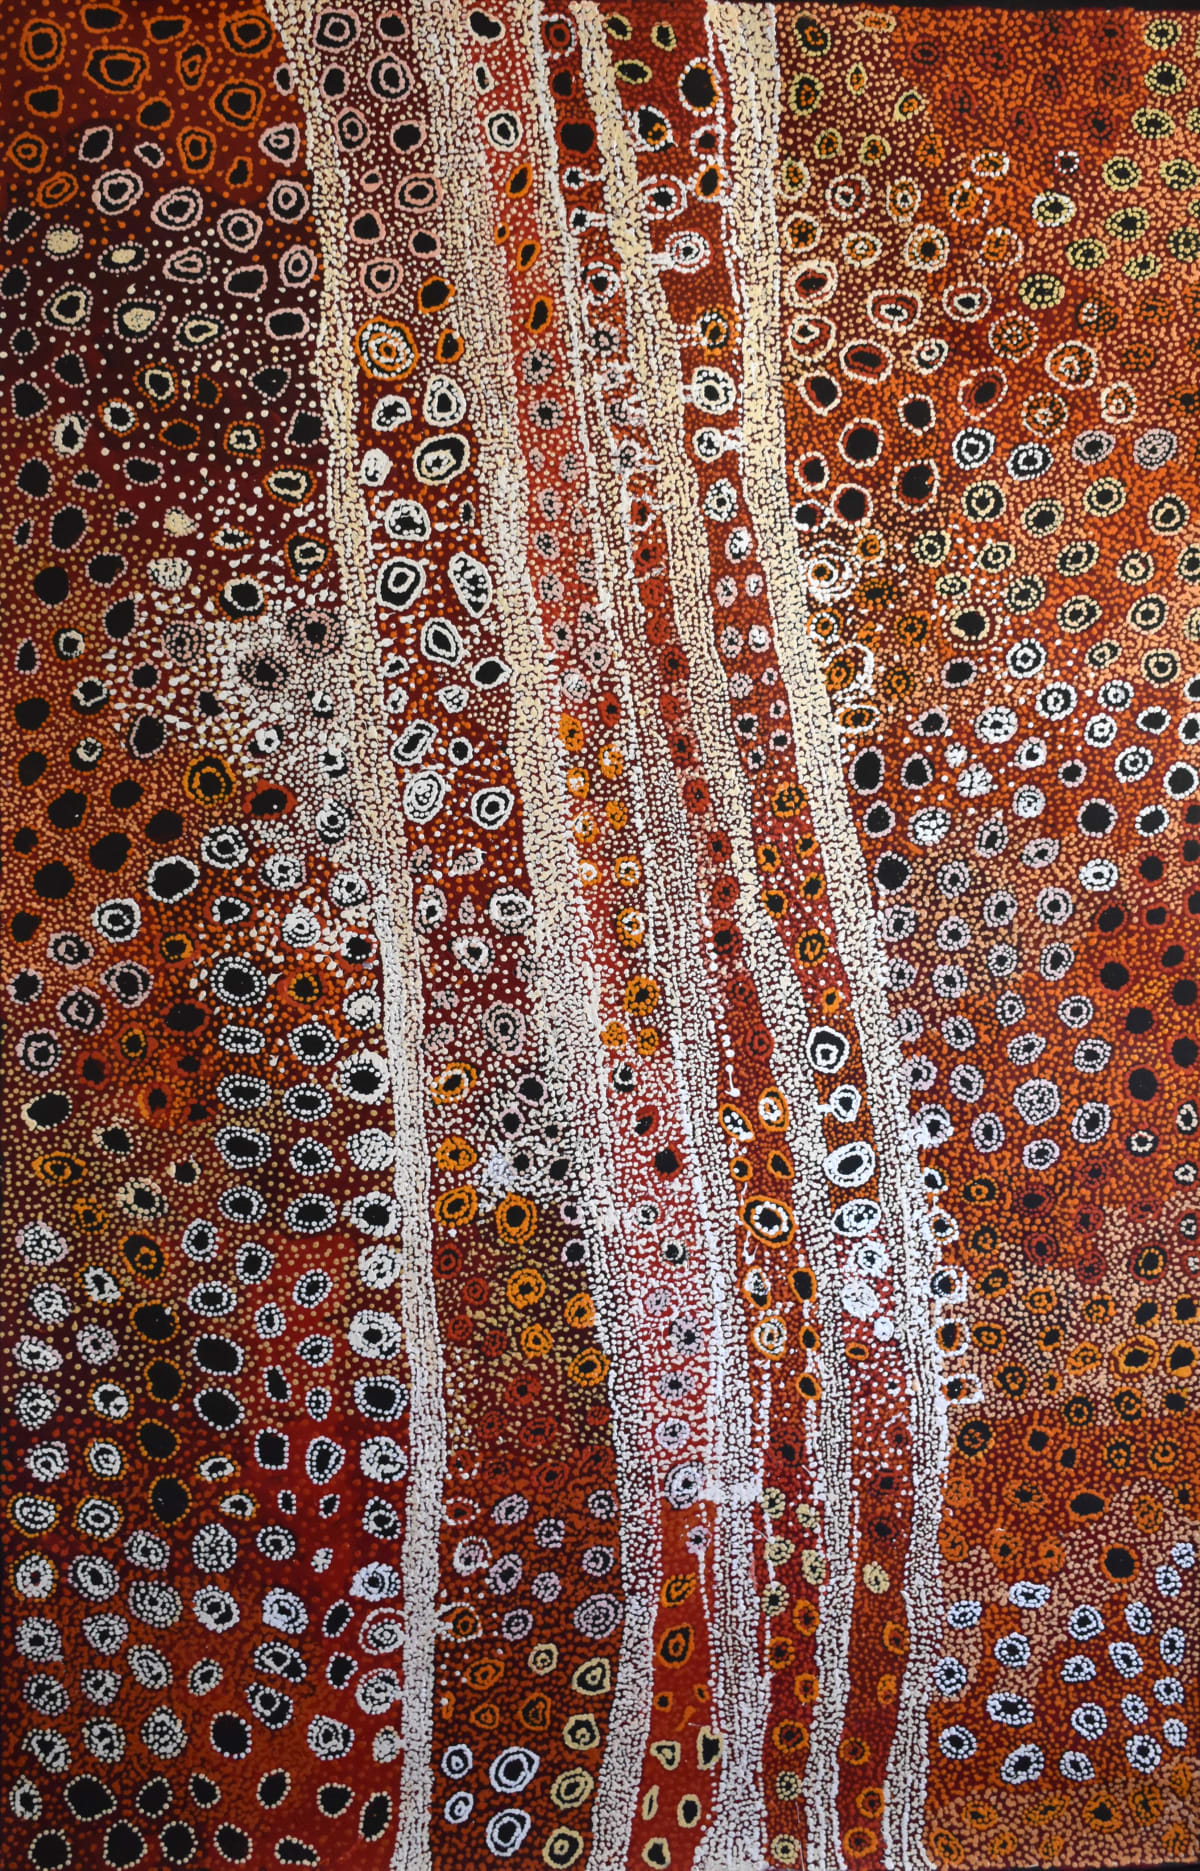 "Mitakiki Women's Collaborative Seven Sisters Acrylic on Linen 122 x 198 cm (48x78"")"